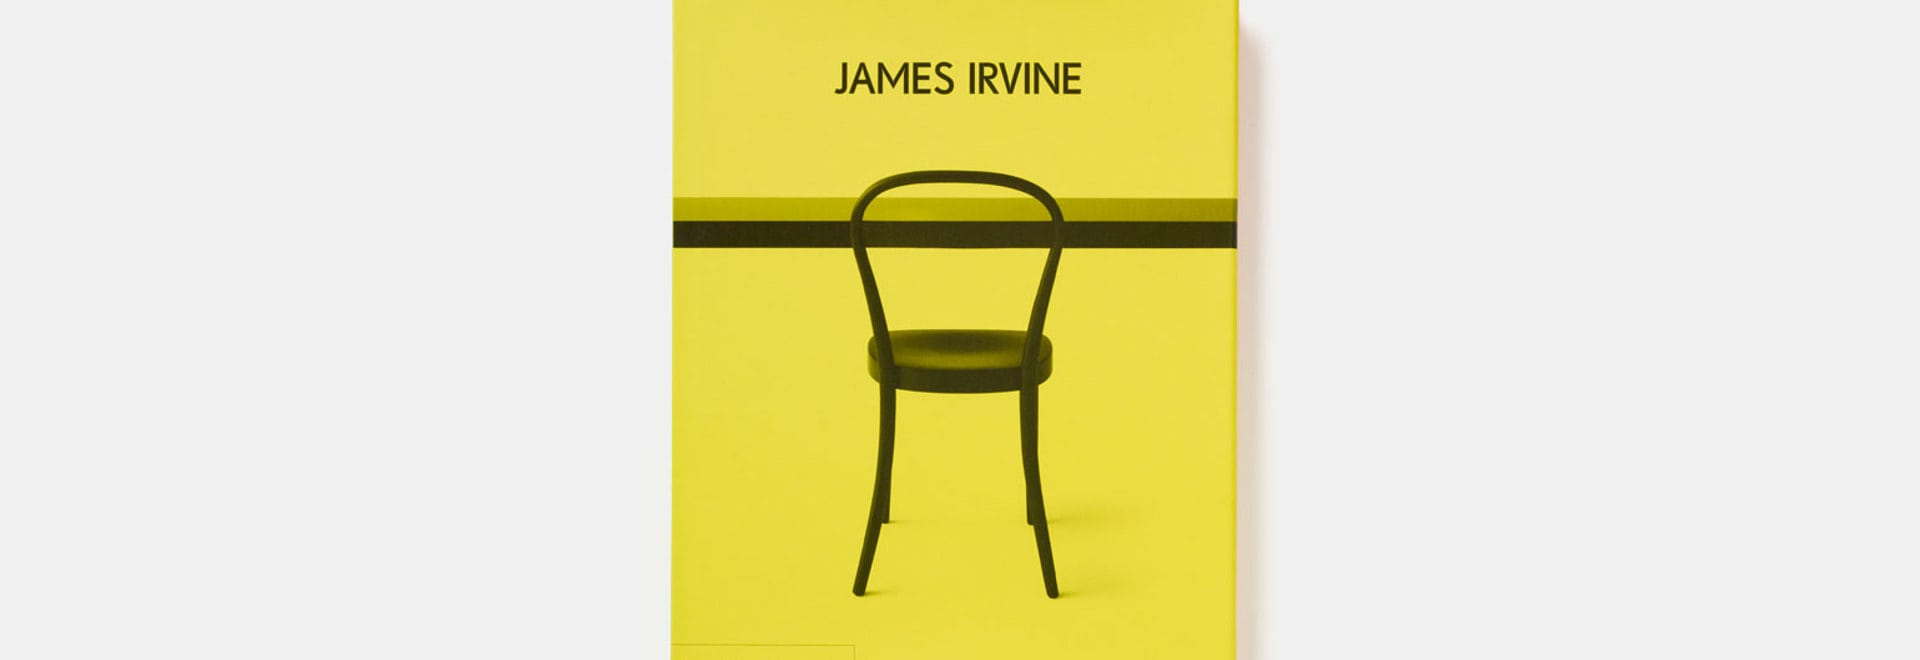 Phaidon press have published this new monograph paying tribute to the late James Irvine, who captivated the world of design with both immense talent and vivid personality. The cover shows 'Chair No...